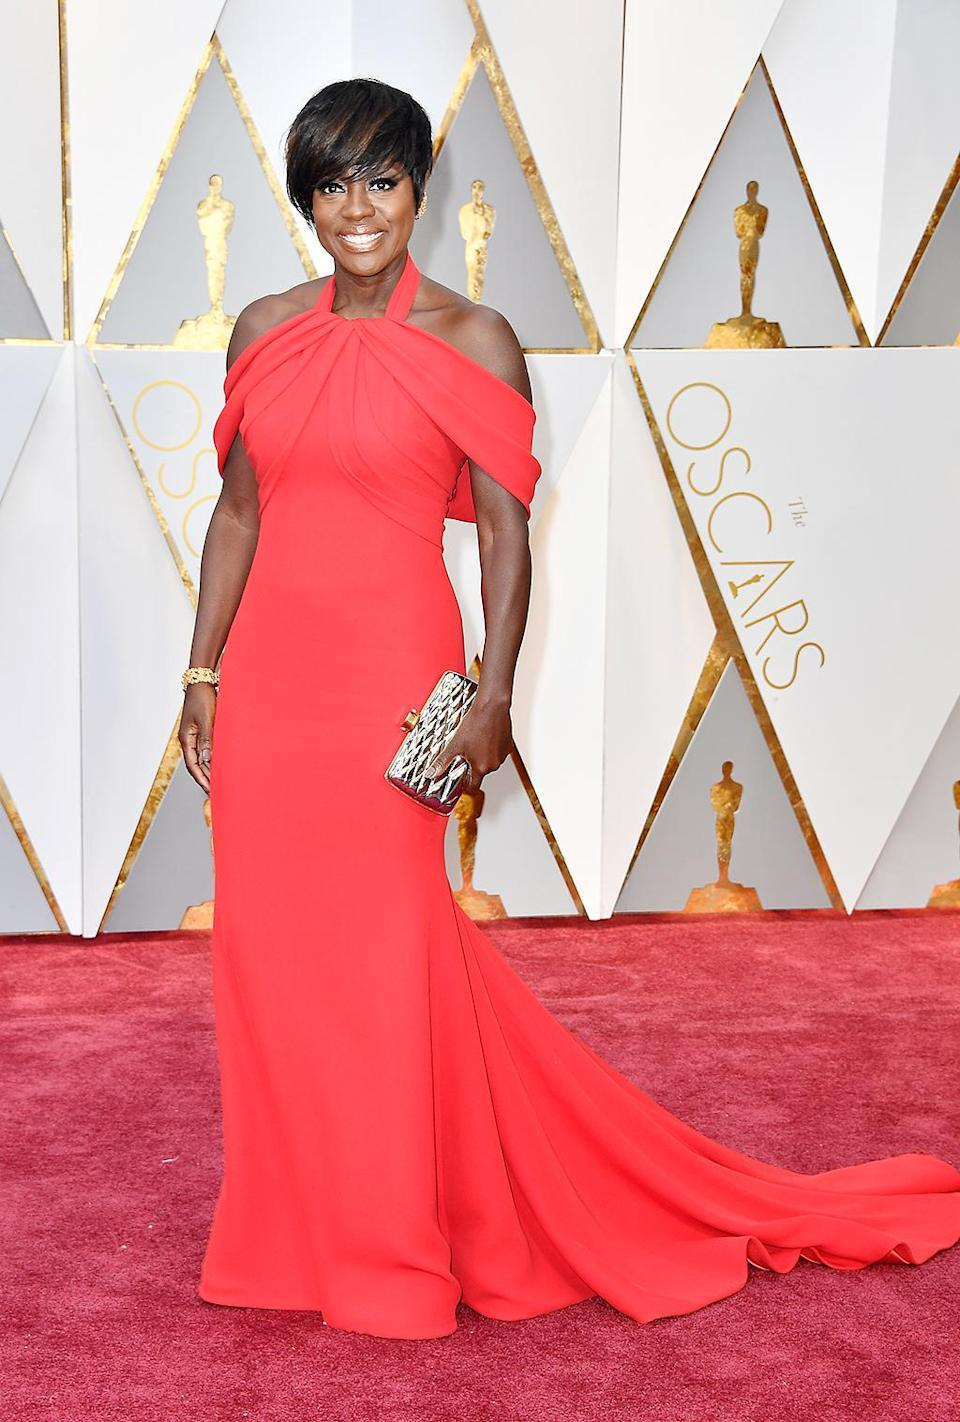 """<p>Viola Davis attends the 89th Annual Academy Awards at Hollywood & Highland Center on February 26, 2017 in Hollywood, California. (Photo by Frazer Harrison/Getty Images)<br><br><a rel=""""nofollow"""" href=""""https://www.yahoo.com/style/oscars-2017-vote-for-the-best-and-worst-dressed-225105125.html"""" data-ylk=""""slk:Go here to vote for best and worst dressed.;outcm:mb_qualified_link;_E:mb_qualified_link;ct:story;"""" class=""""link rapid-noclick-resp yahoo-link"""">Go here to vote for best and worst dressed.</a> </p>"""